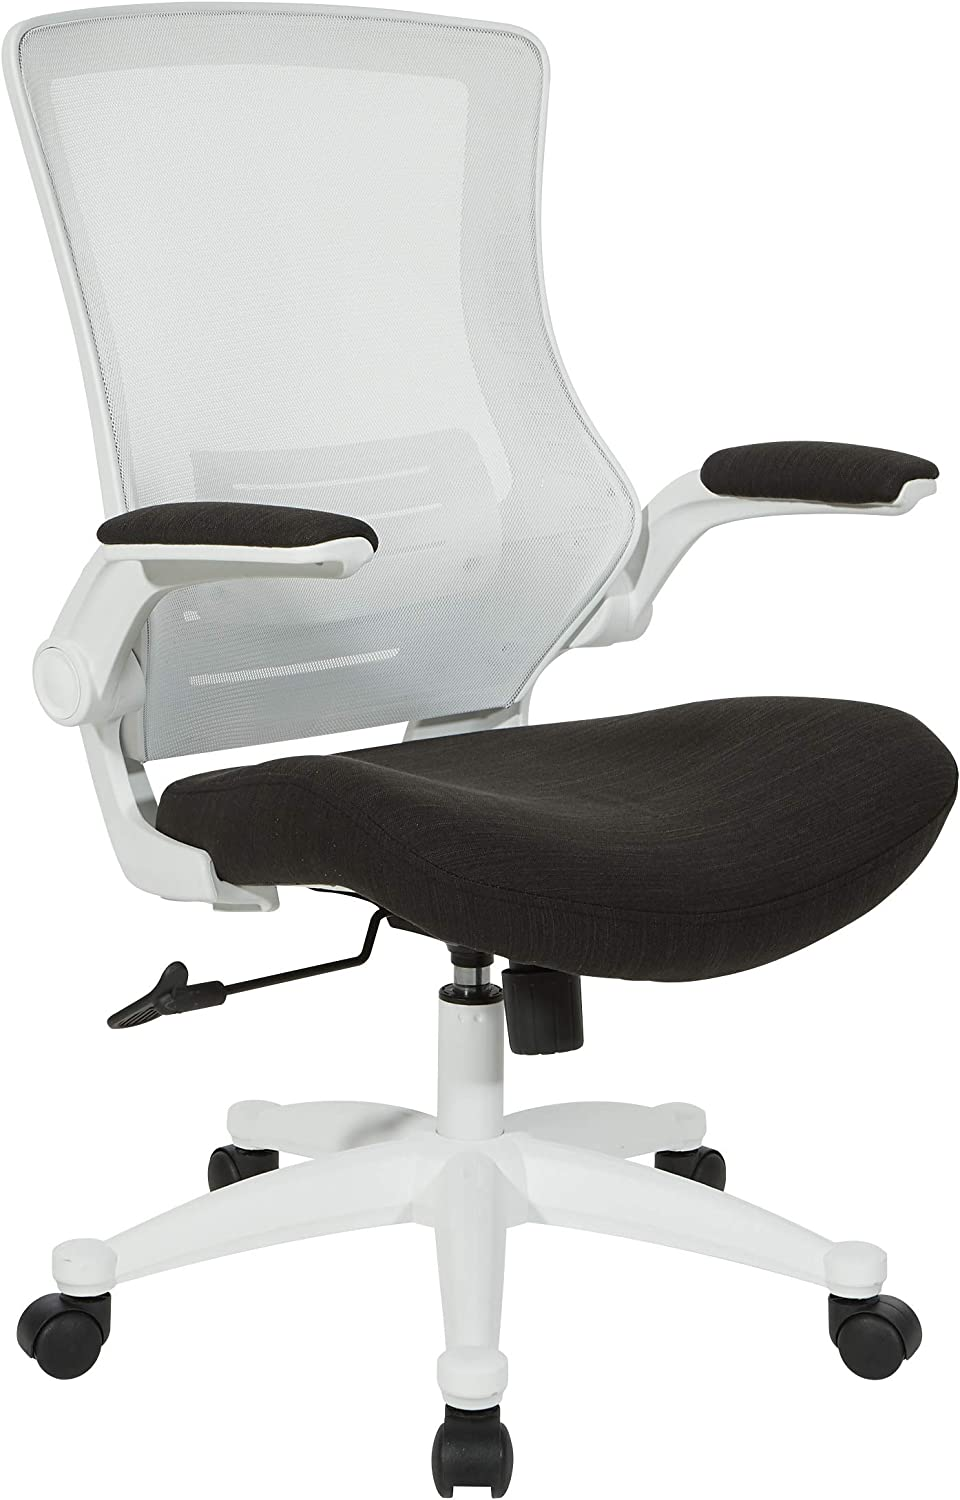 Office Star White Screen Back Manager's Chair, Linen Black